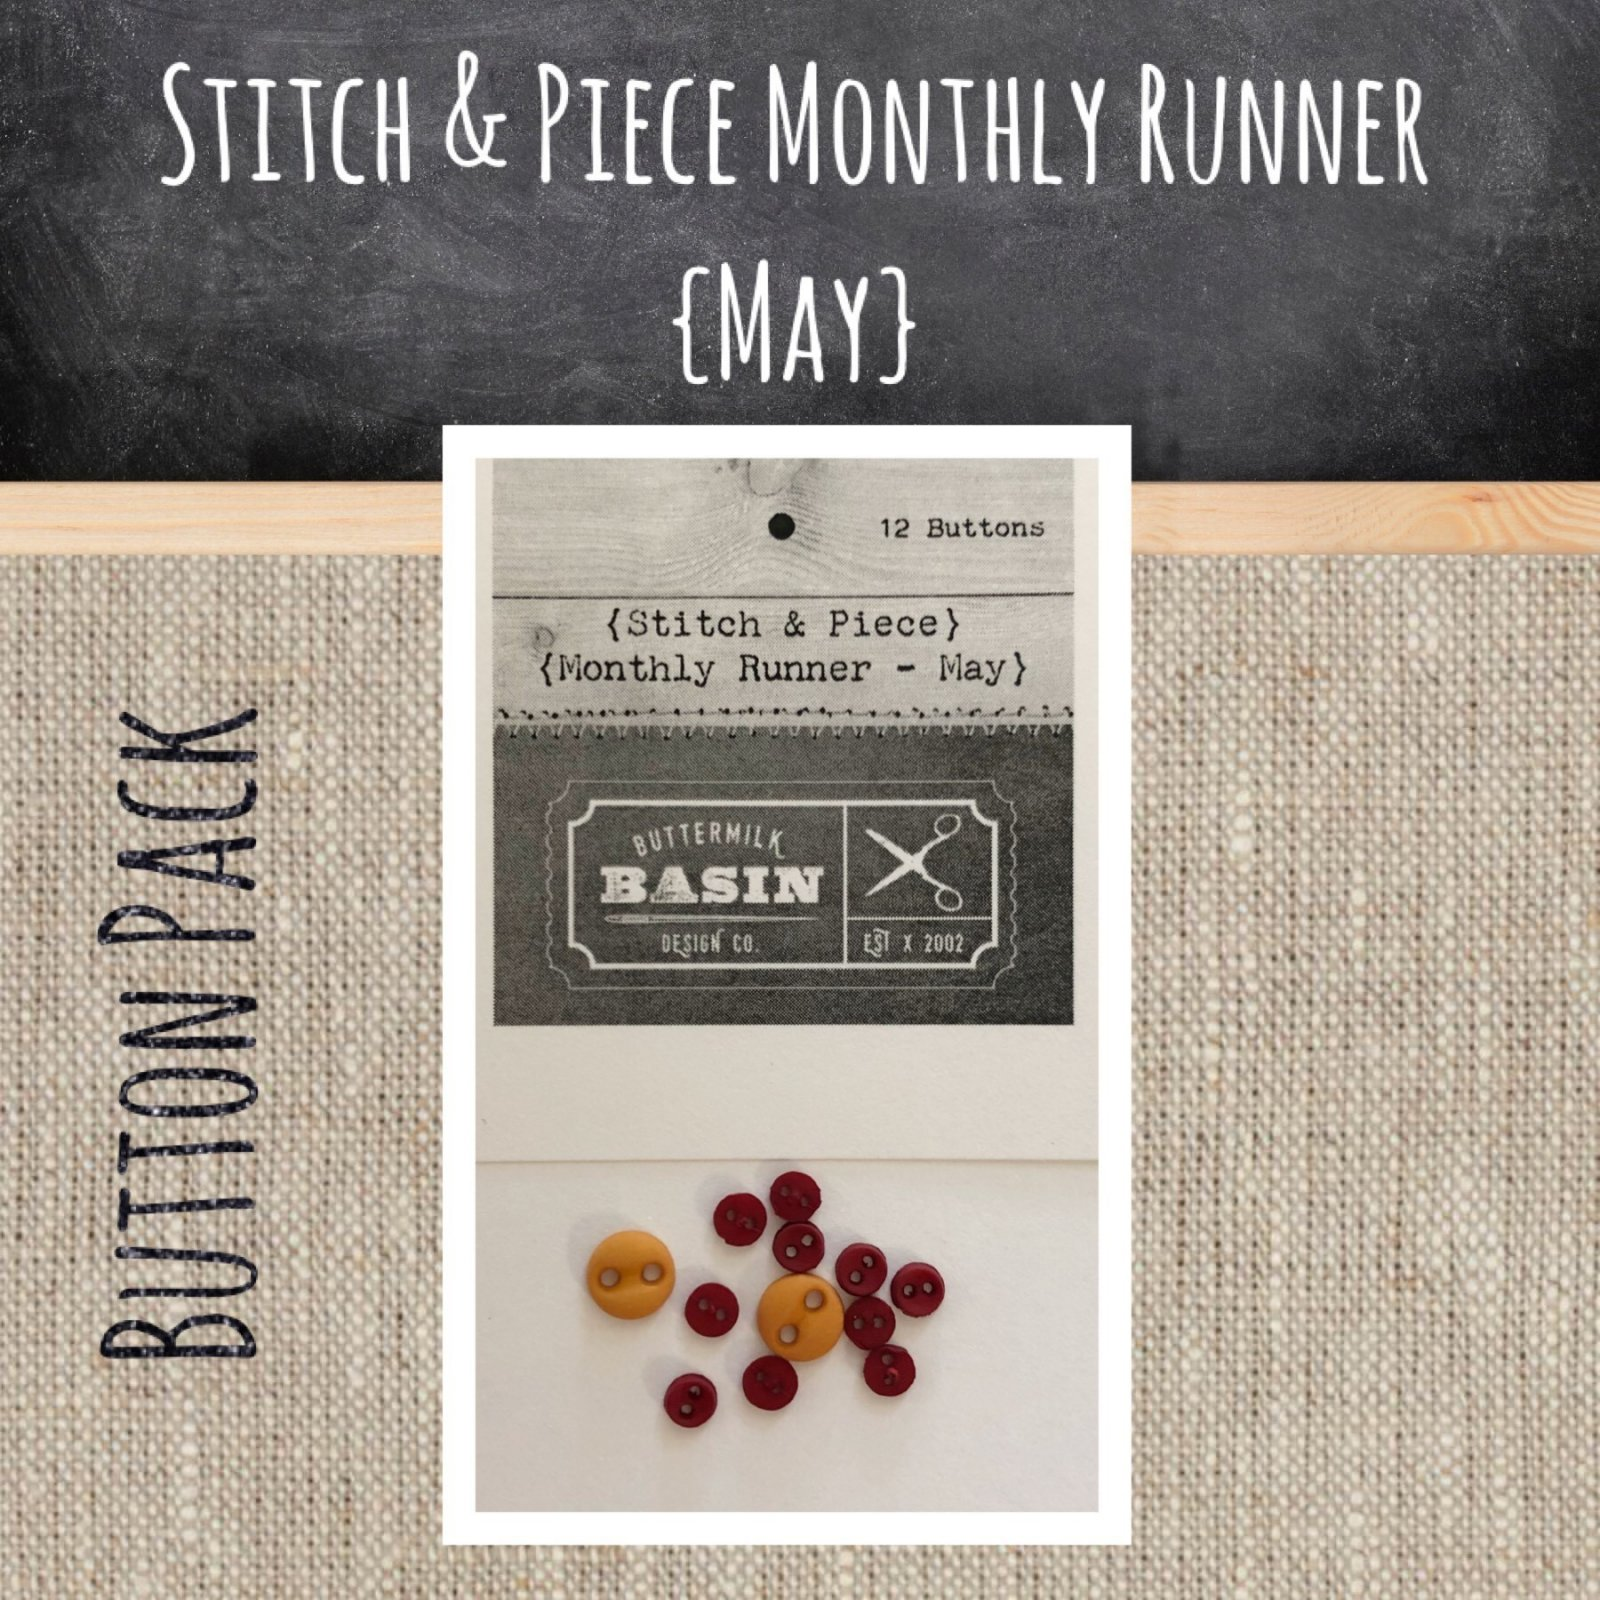 May Button Pack for Stitch & Piece Monthly Runner